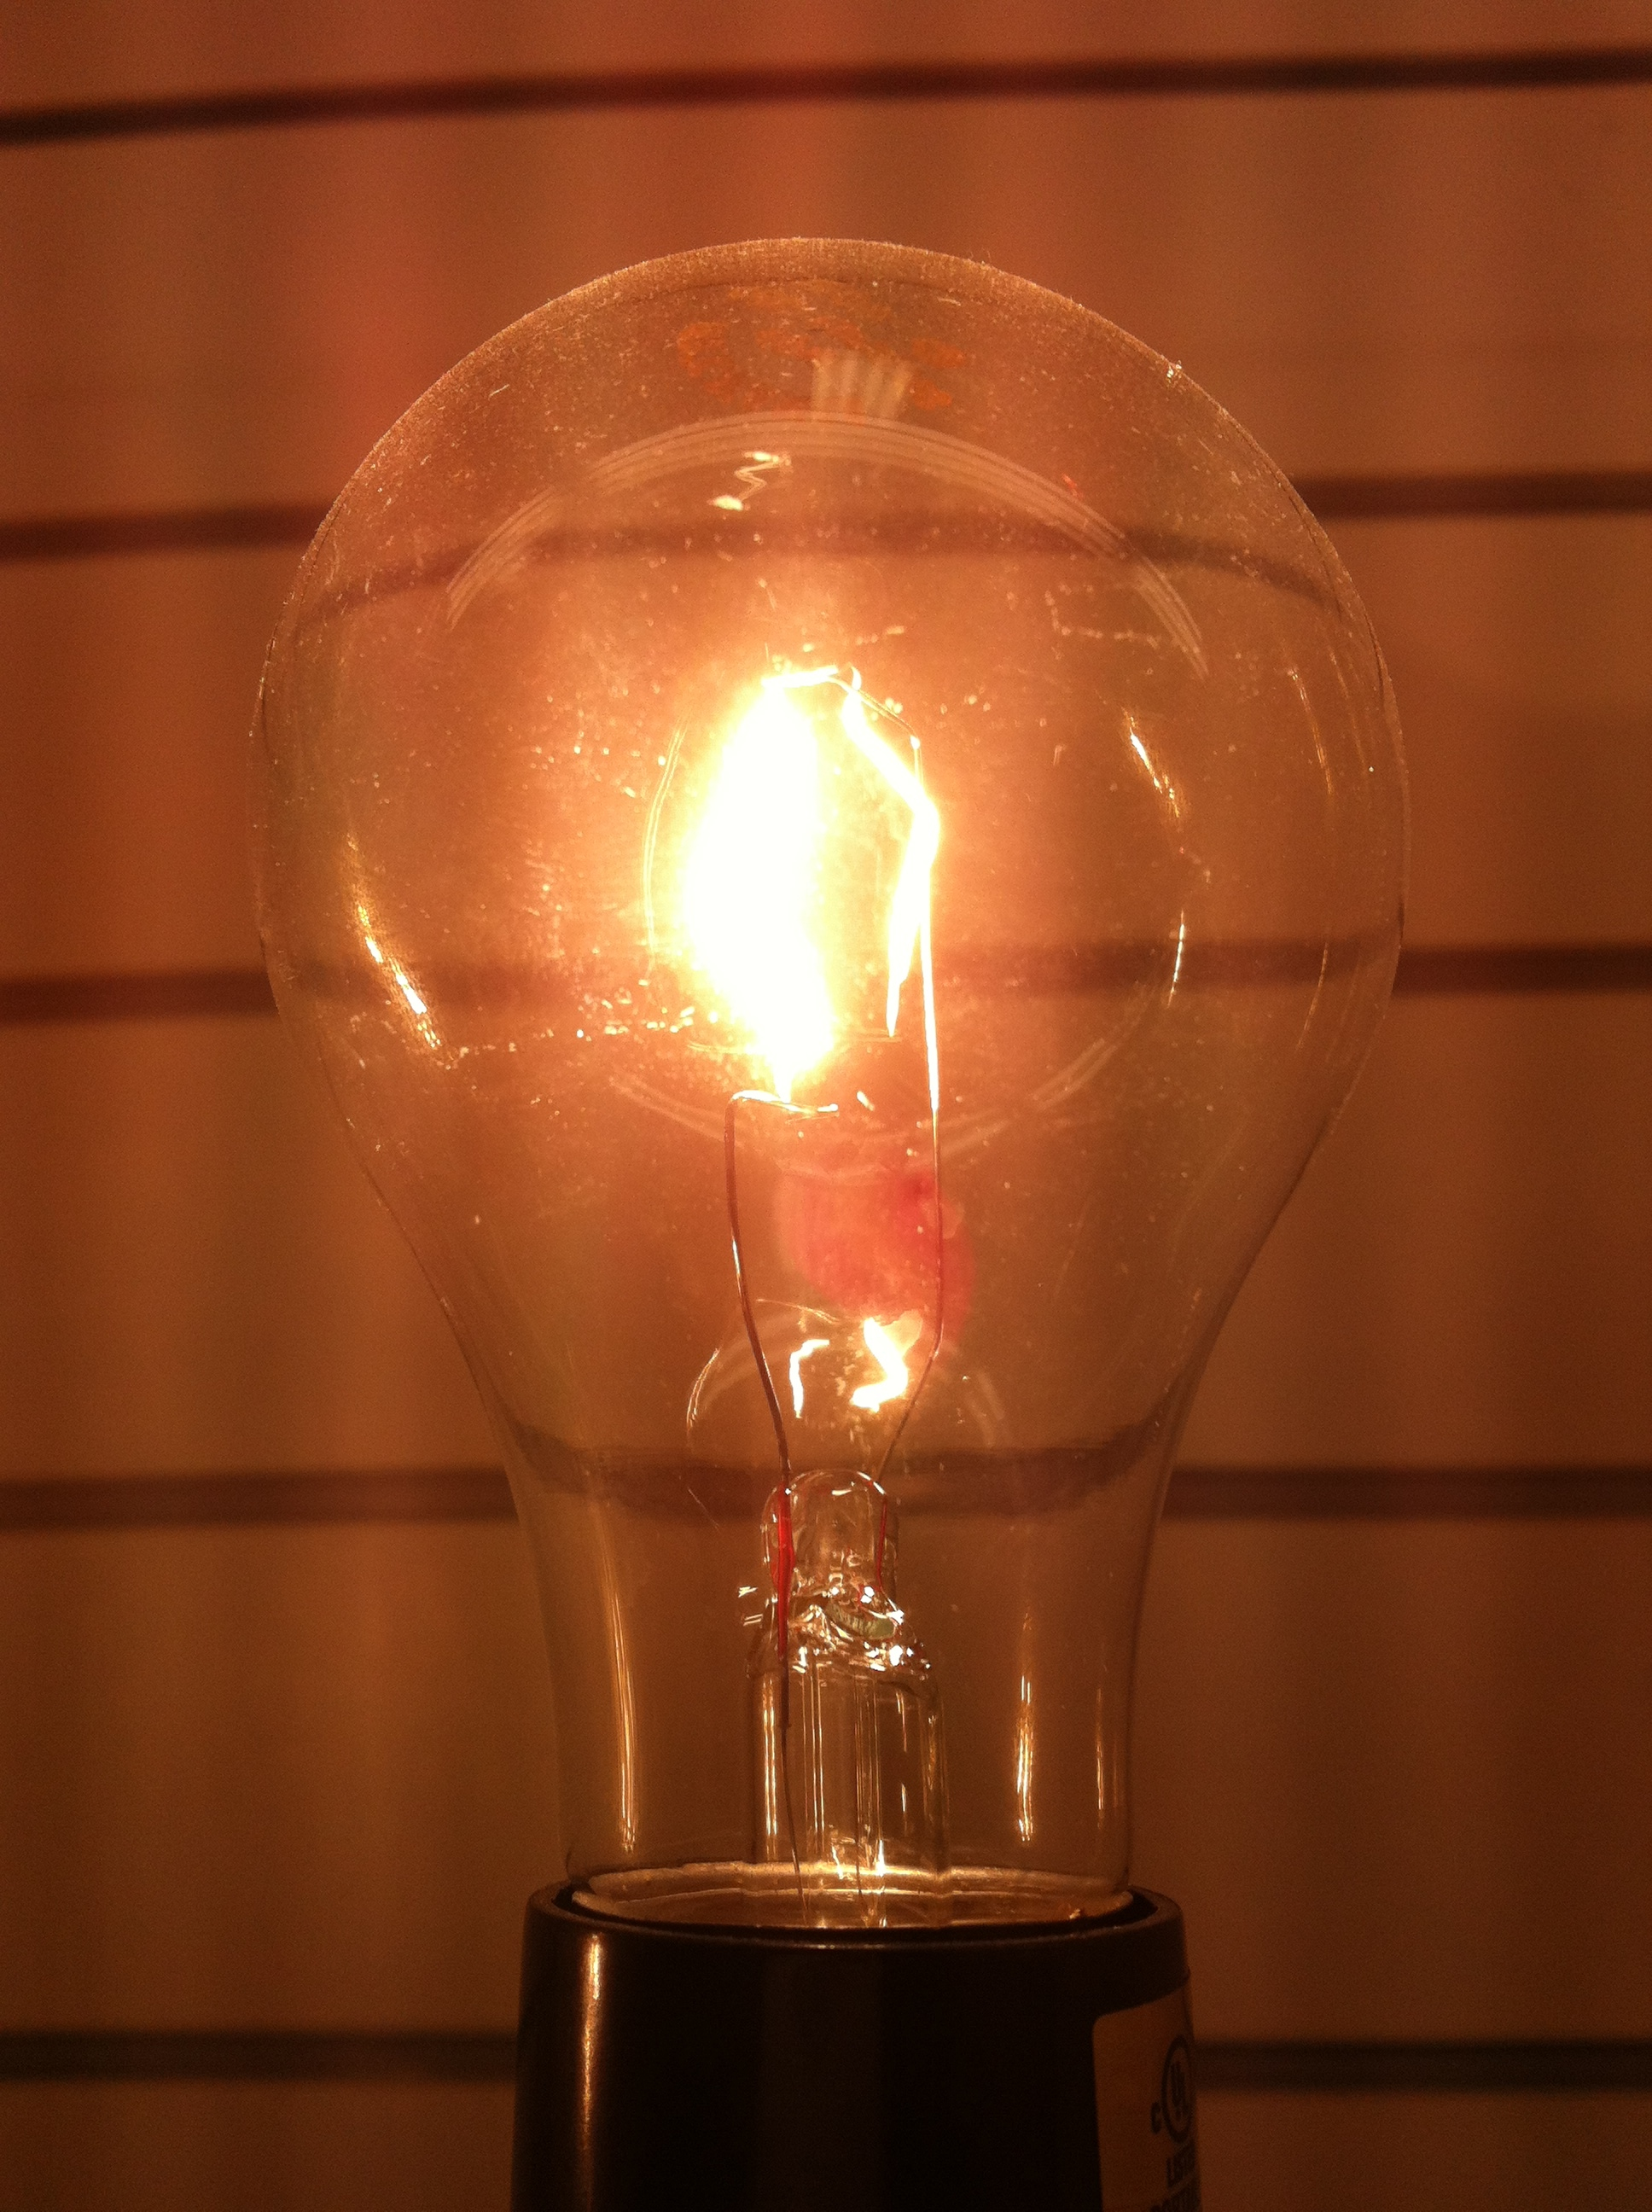 Bright ideas, photo by Wendy David-Gaines